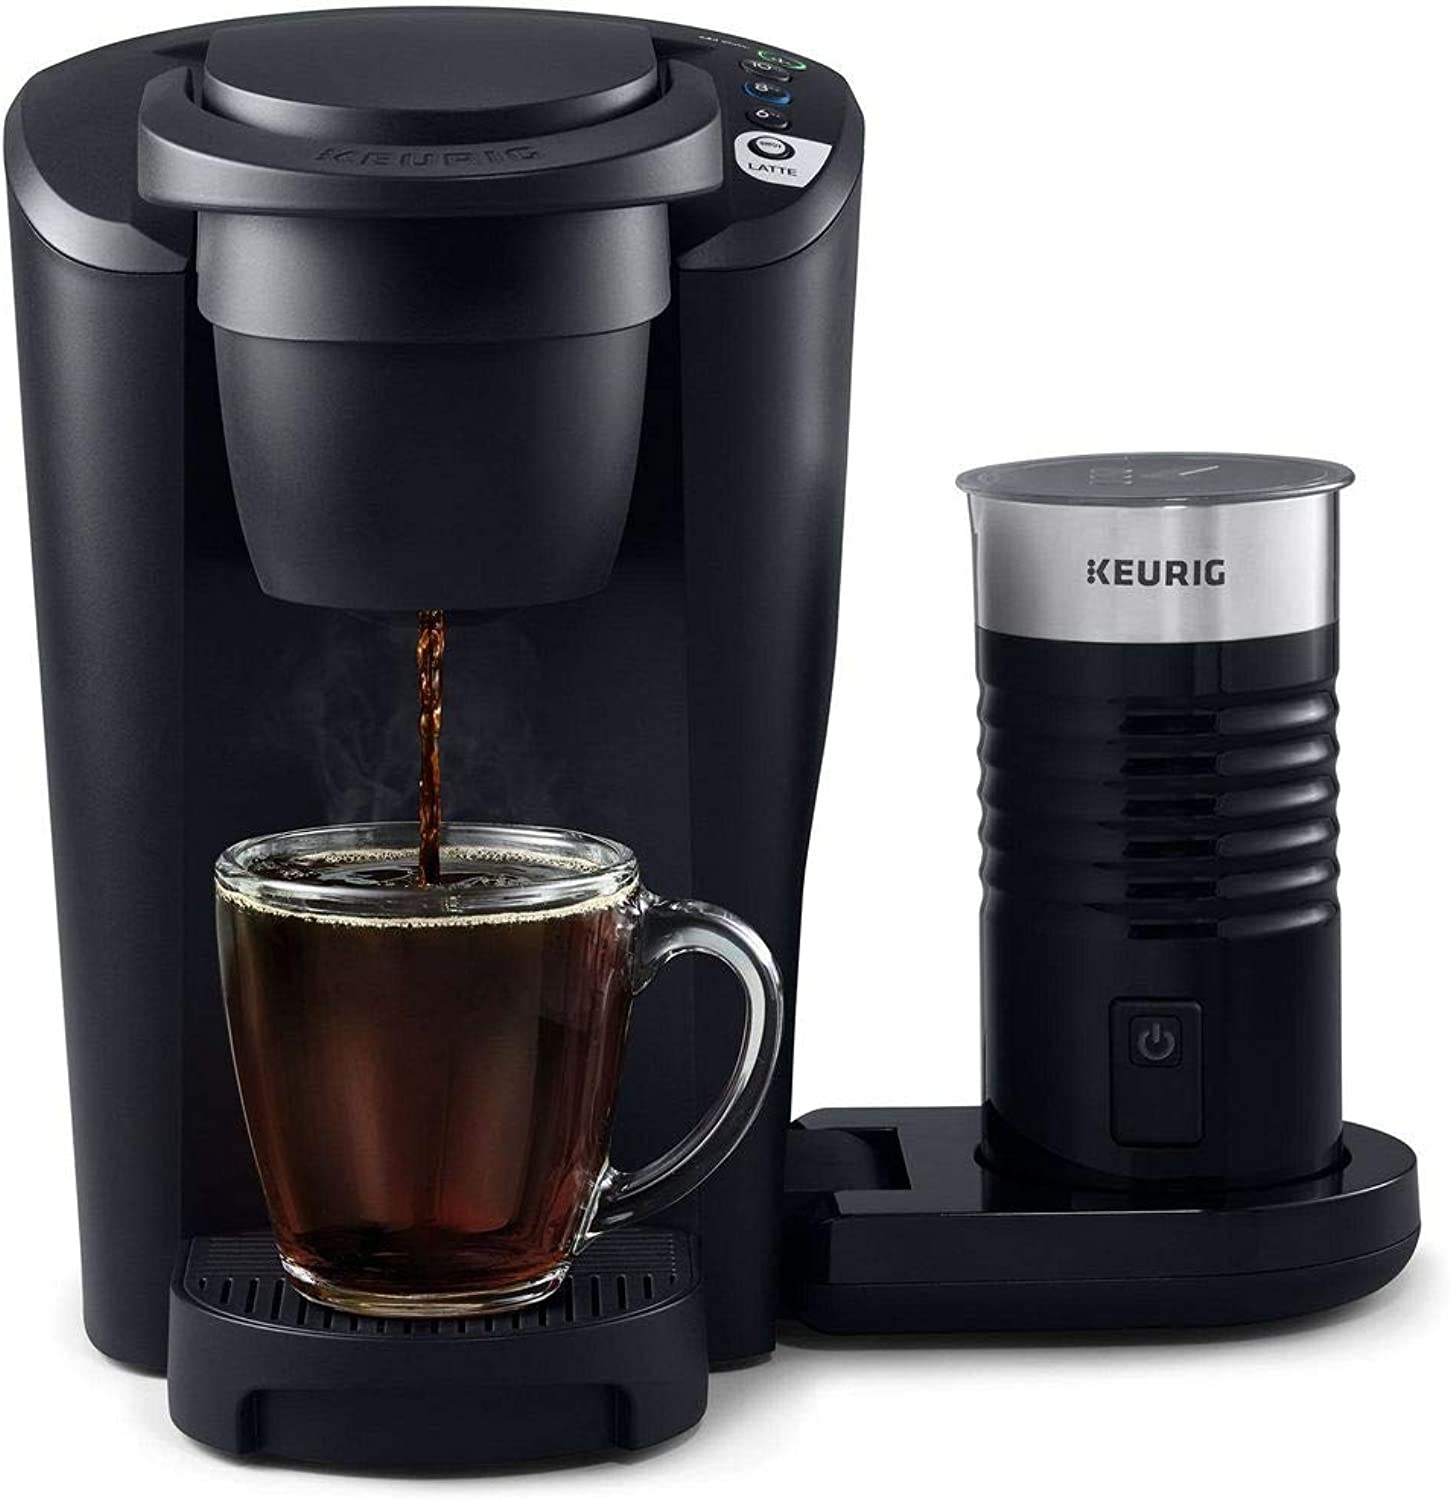 Keurig K-Latte Single Serve K-Cup Coffee and Latte Maker, Comes with Milk Fredher, Compatible With all Keurig K-Cup Pods, Matte Black